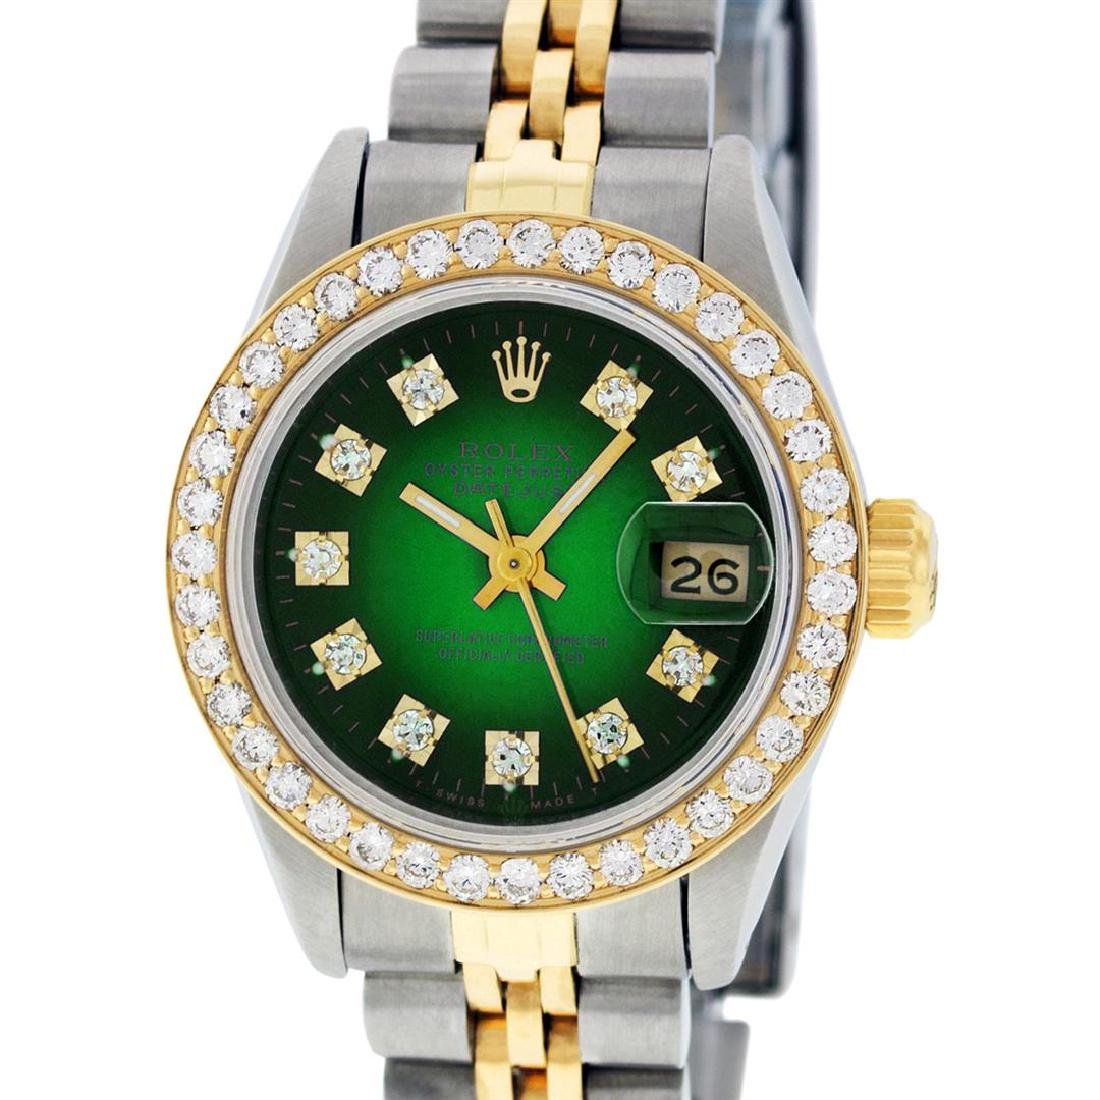 Rolex Ladies 2 Tone 14K Green Vignette VS Diamond